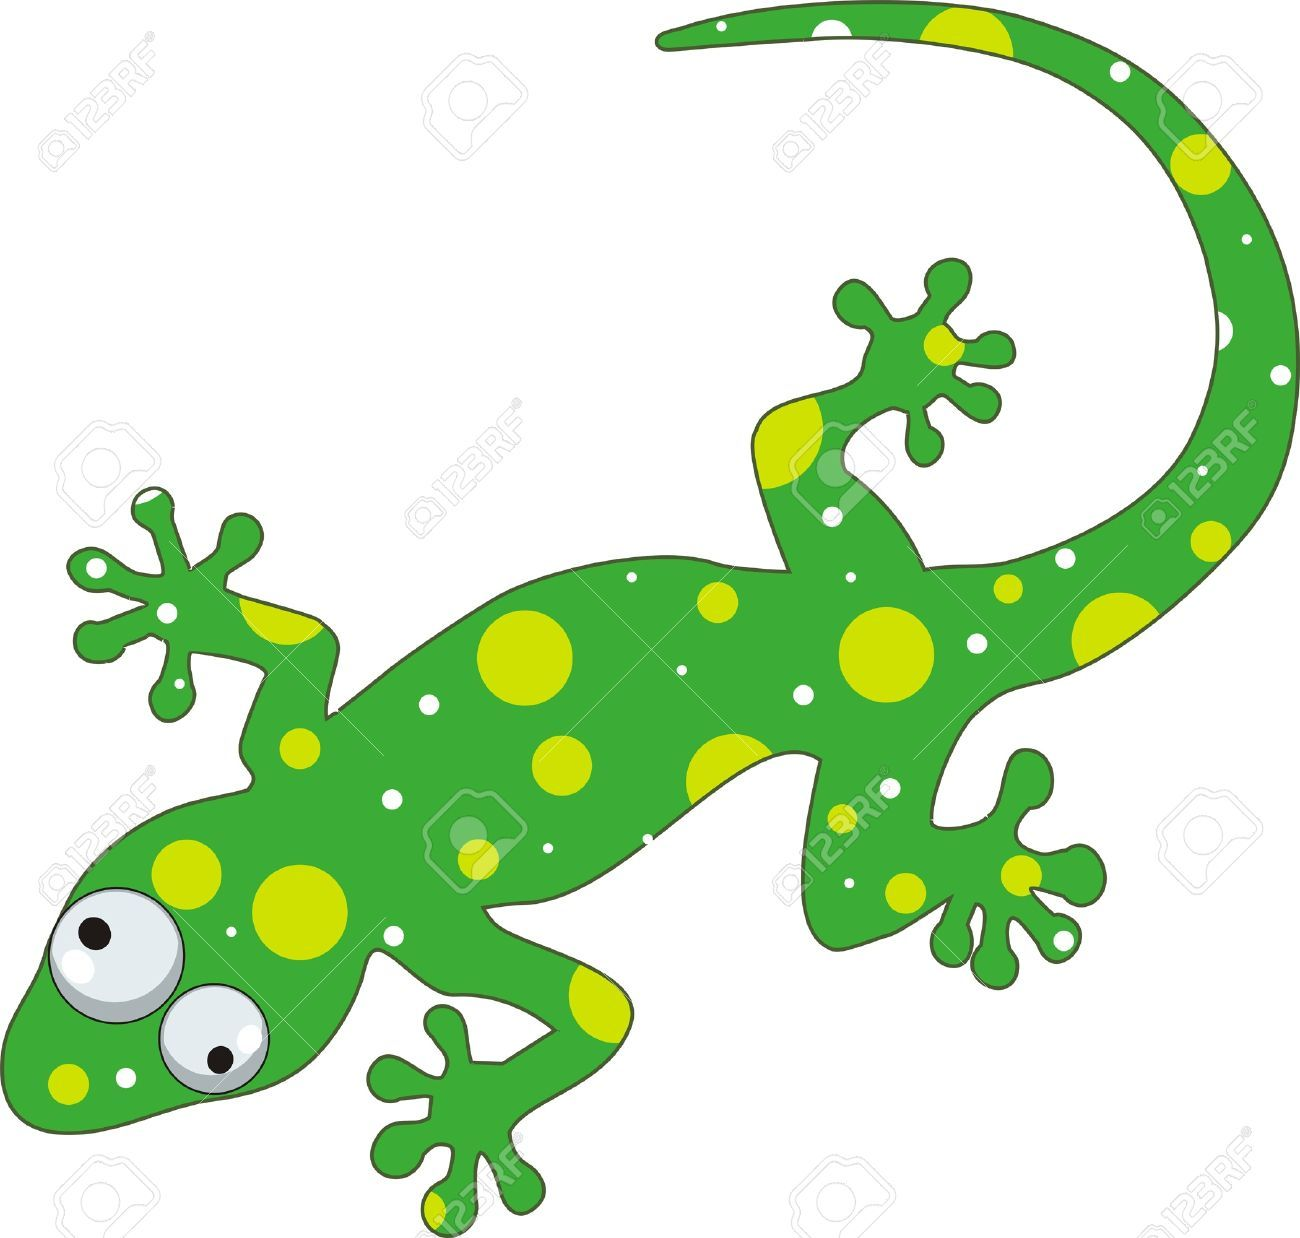 picture royalty free stock Chameleon lizard cliparts stock. Gecko clipart lizerd.